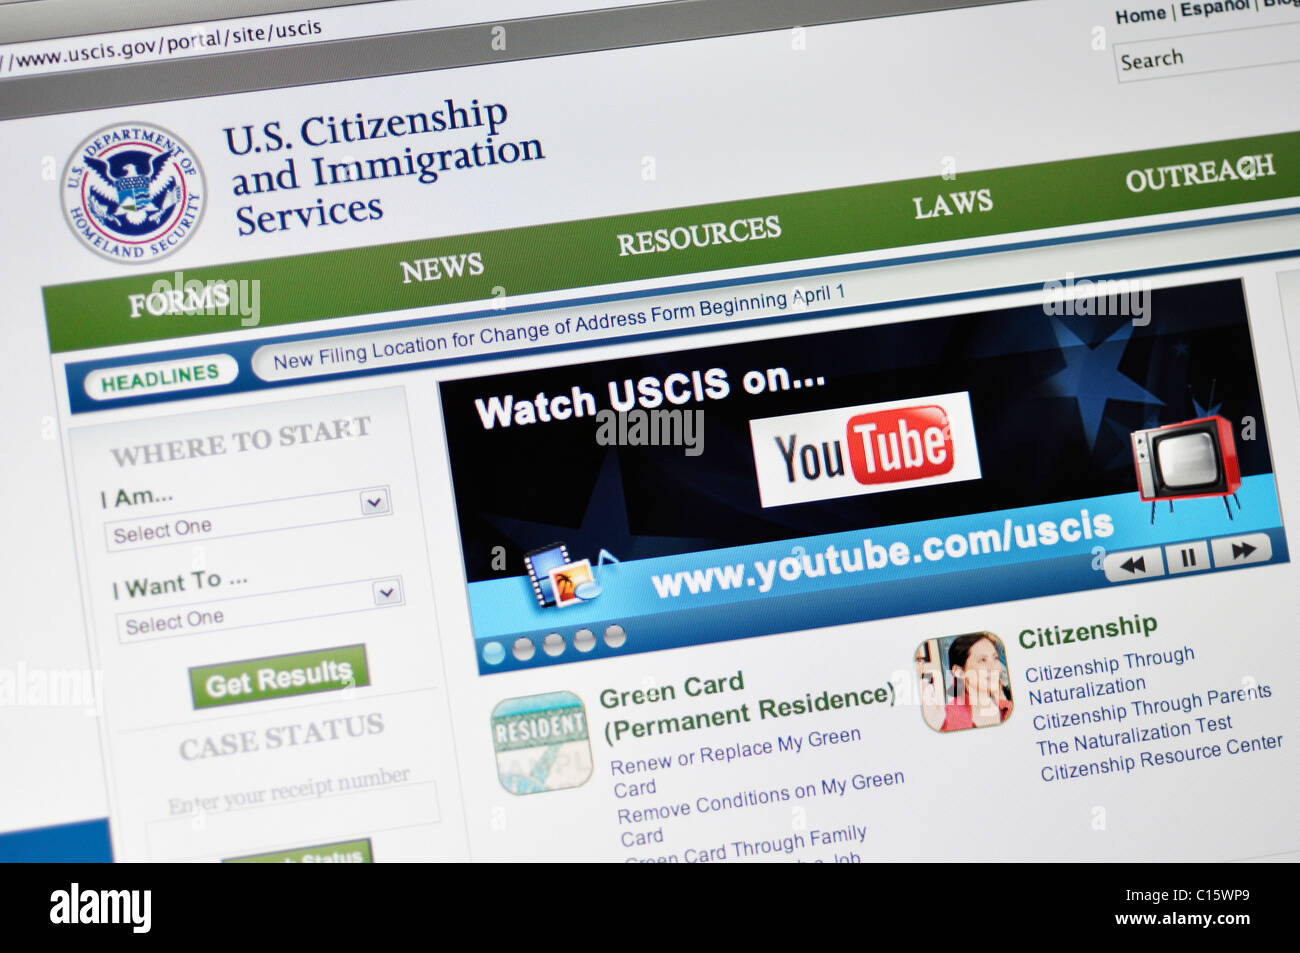 Department of Homeland Security, US Citizenship and Immigration Services - Stock Image